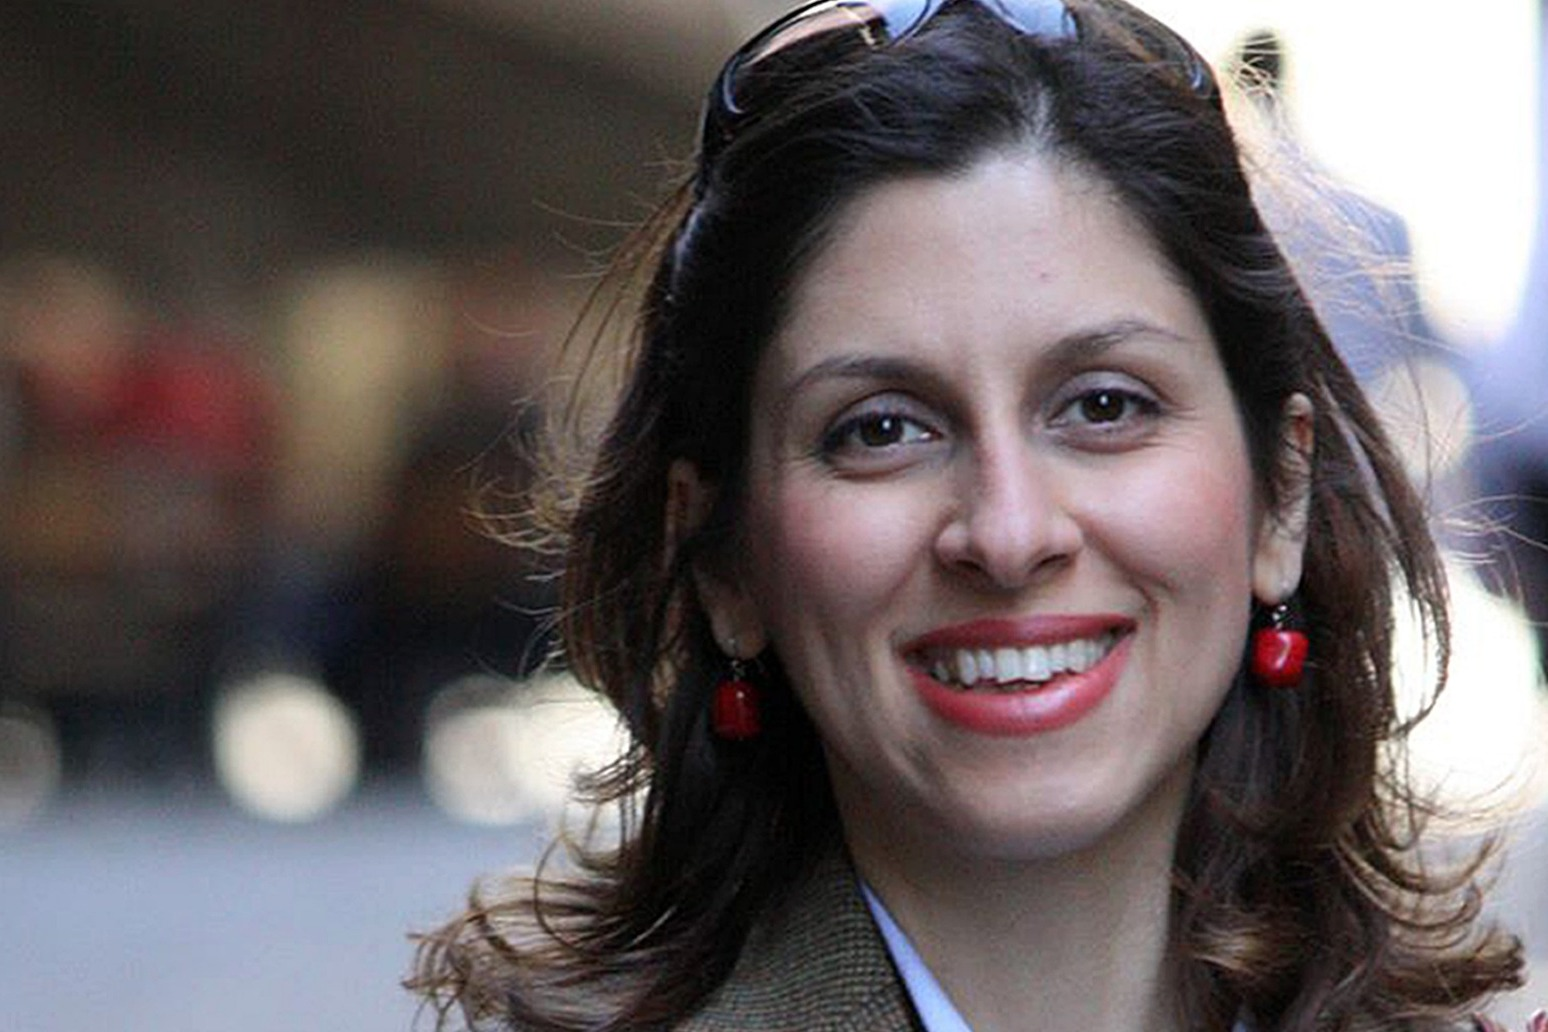 Nazanin Zaghari-Ratcliffe 'happy' but 'in middle of government game of chess'